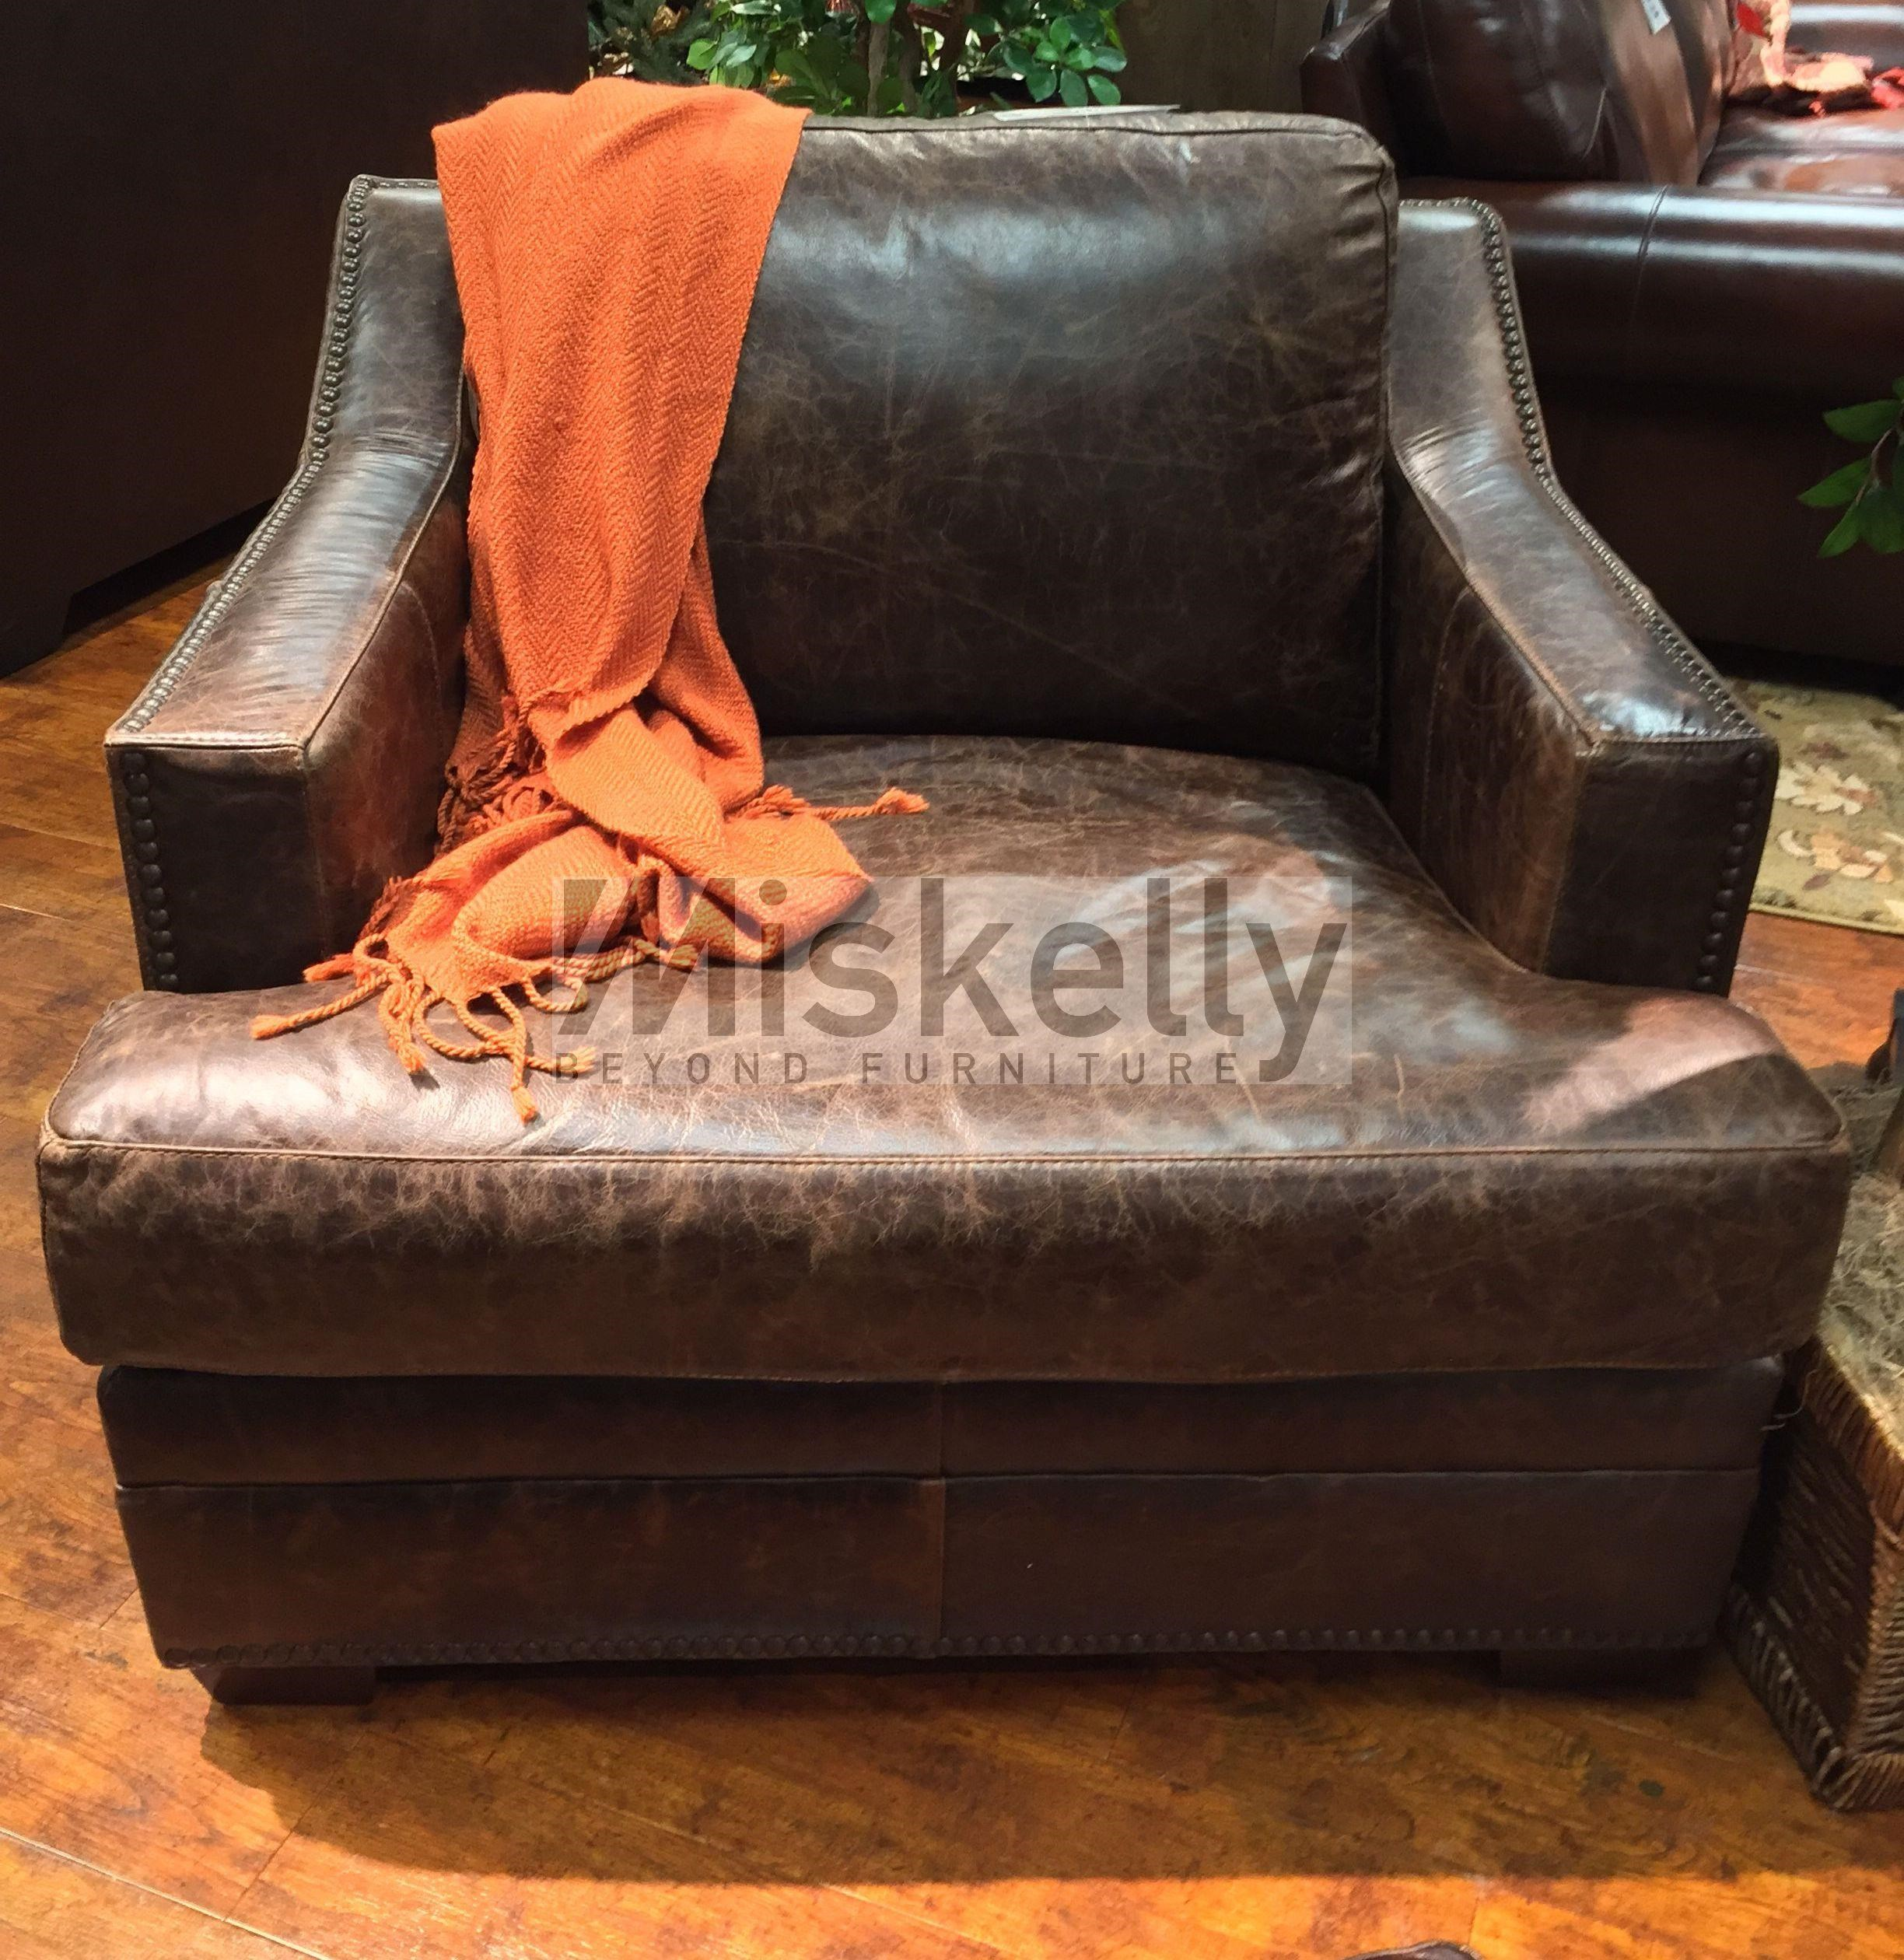 USA Premium Leather 9355 Chair Miskelly Furniture Upholstered